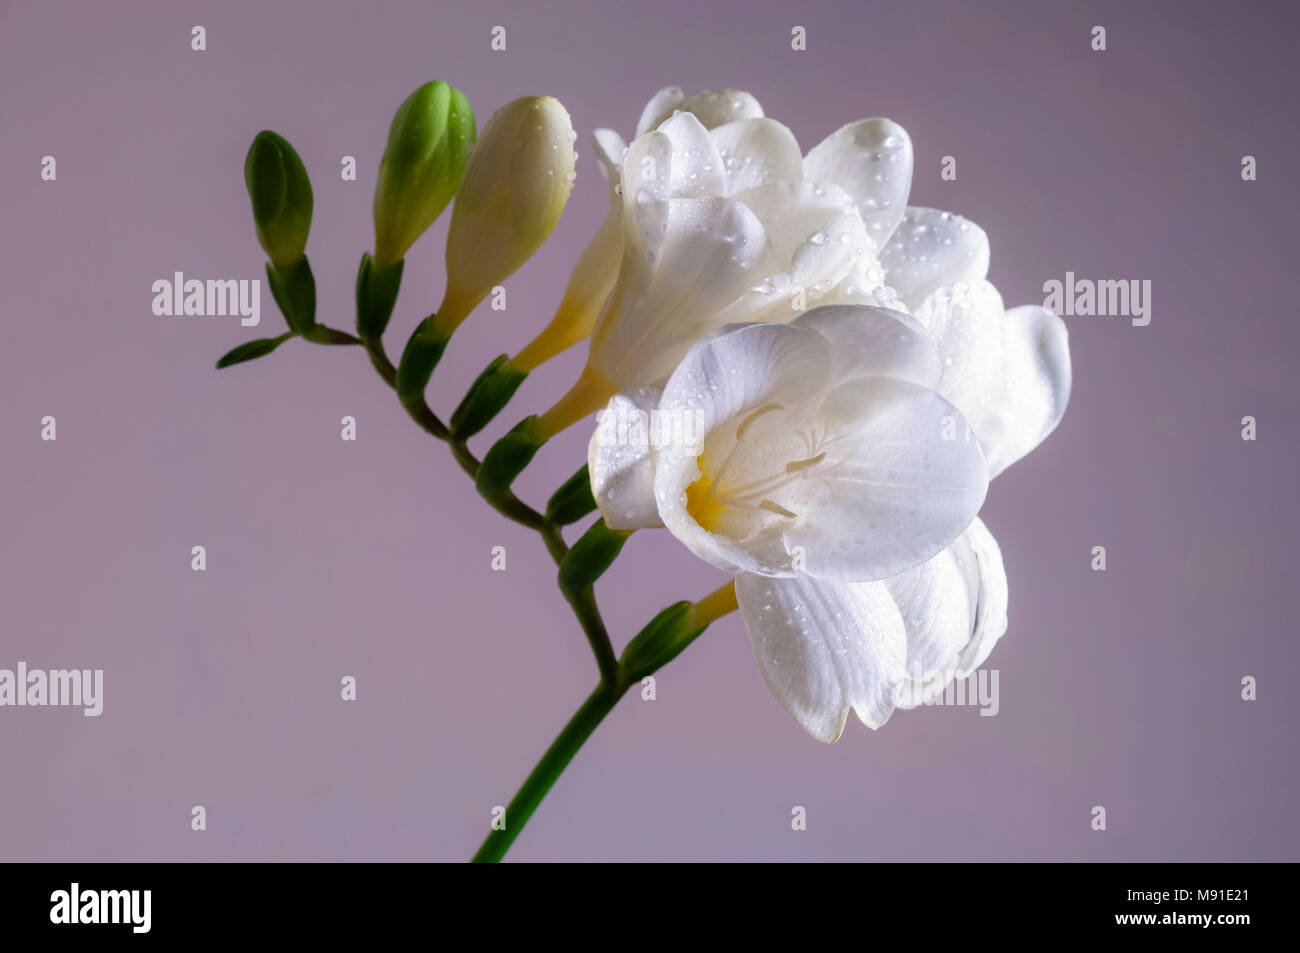 Freesia flower stock photos freesia flower stock images alamy white blooming freesia flower with water drops close up stock image mightylinksfo